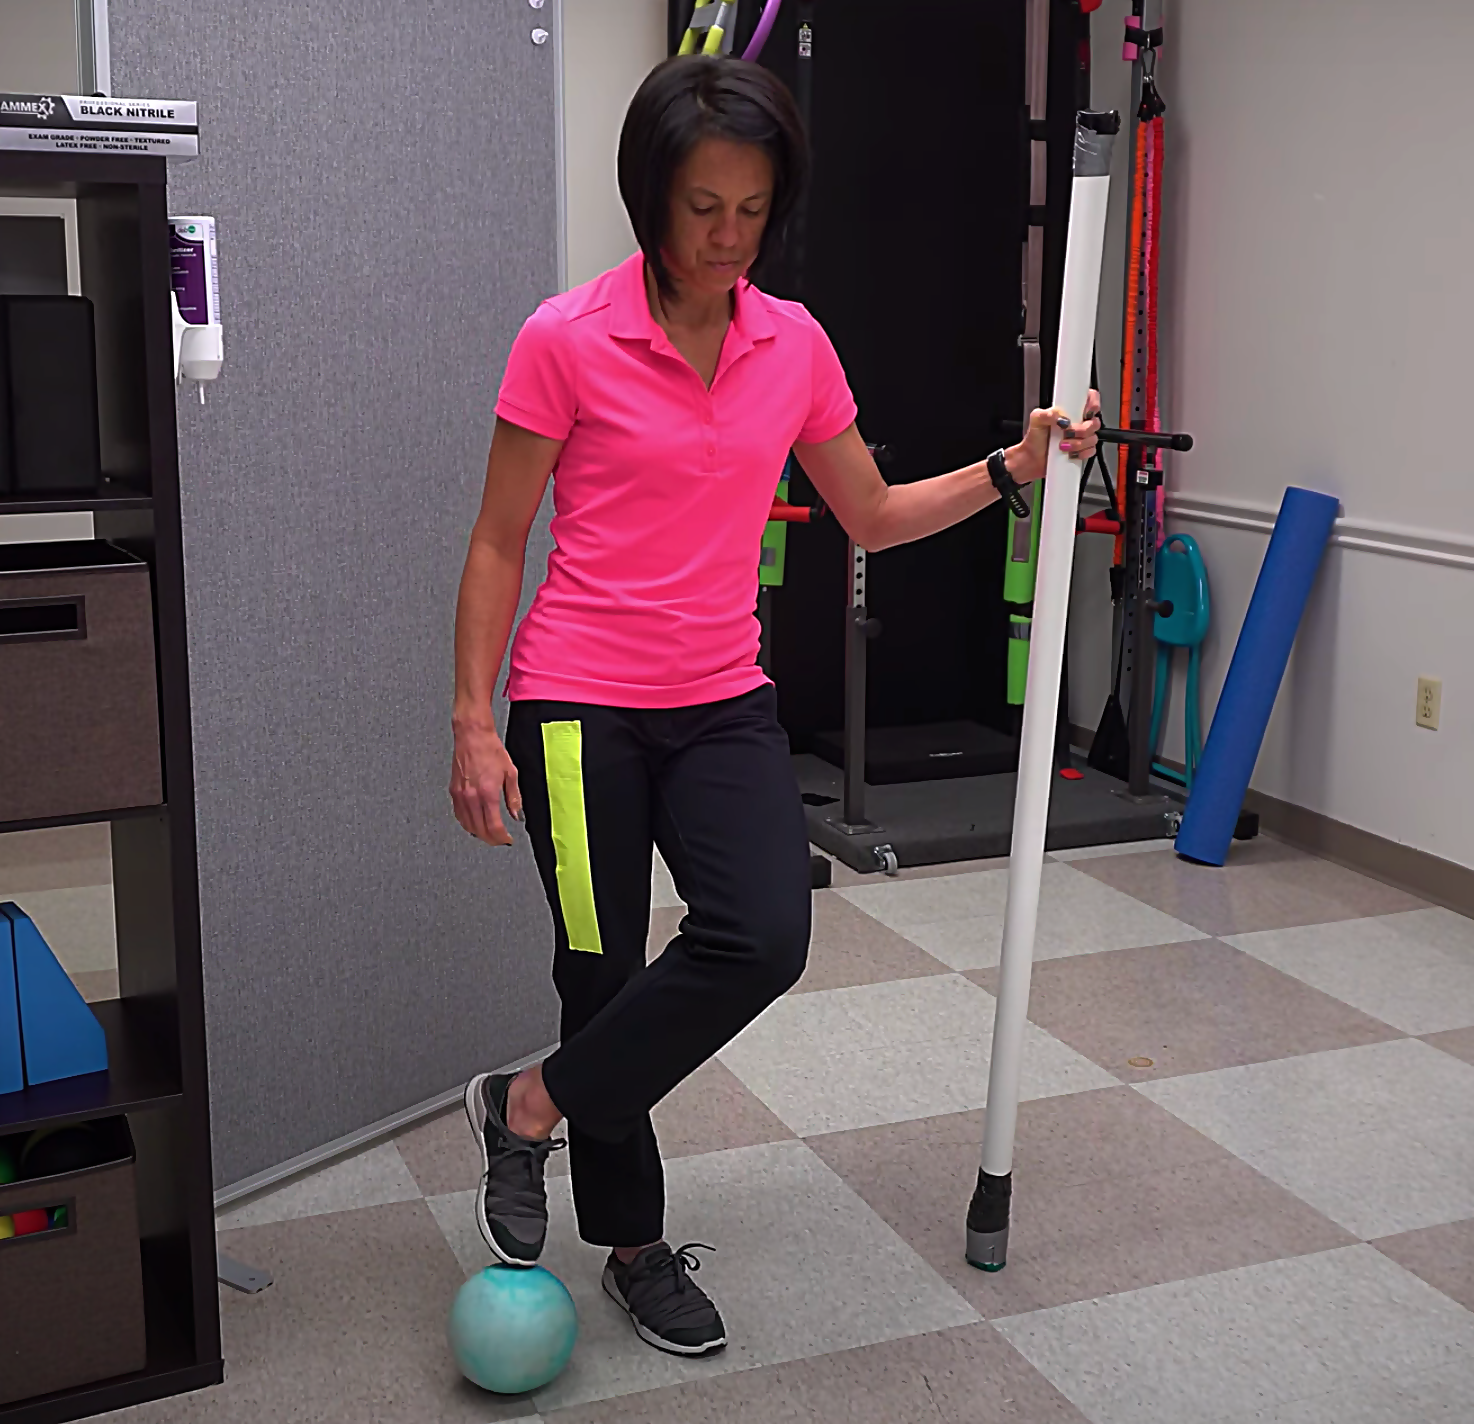 advanced balance activity with a medicine ball and half moon pattern